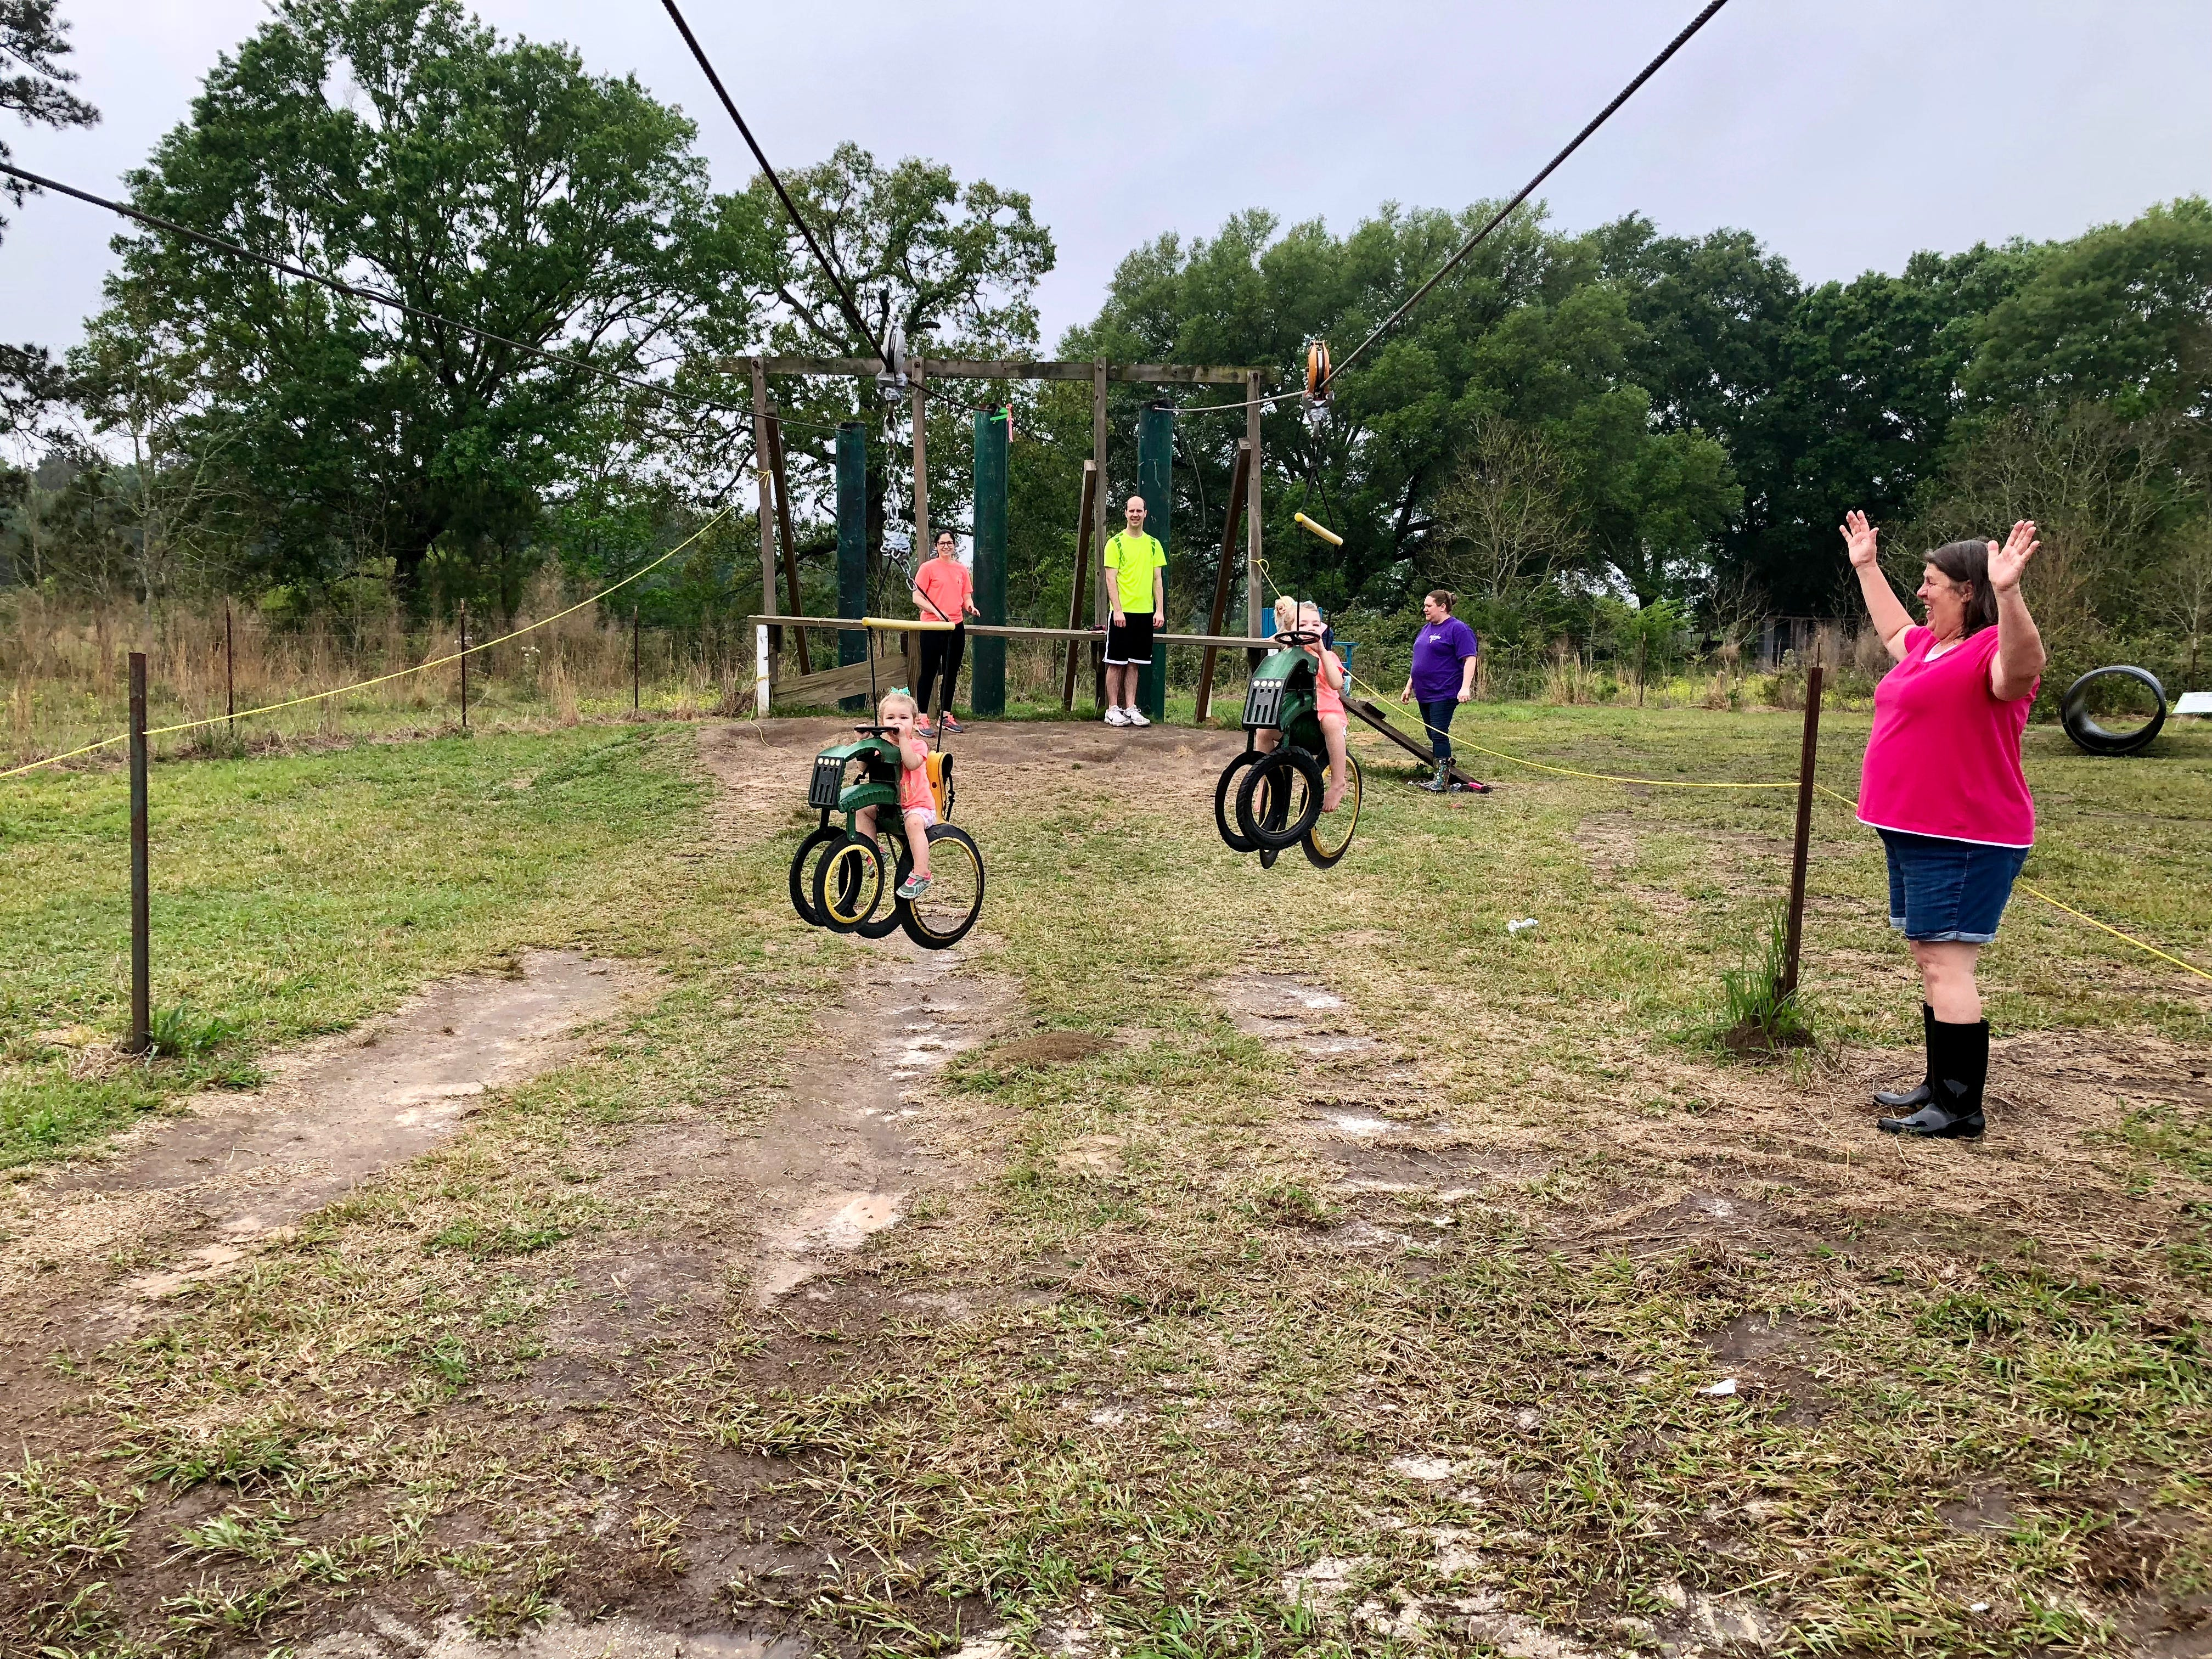 Visitors can pick fruit and zipline on tires in the shape of John Deer tractors at Mrs. Heather's Strawberry Farm in Albany, Louisiana.